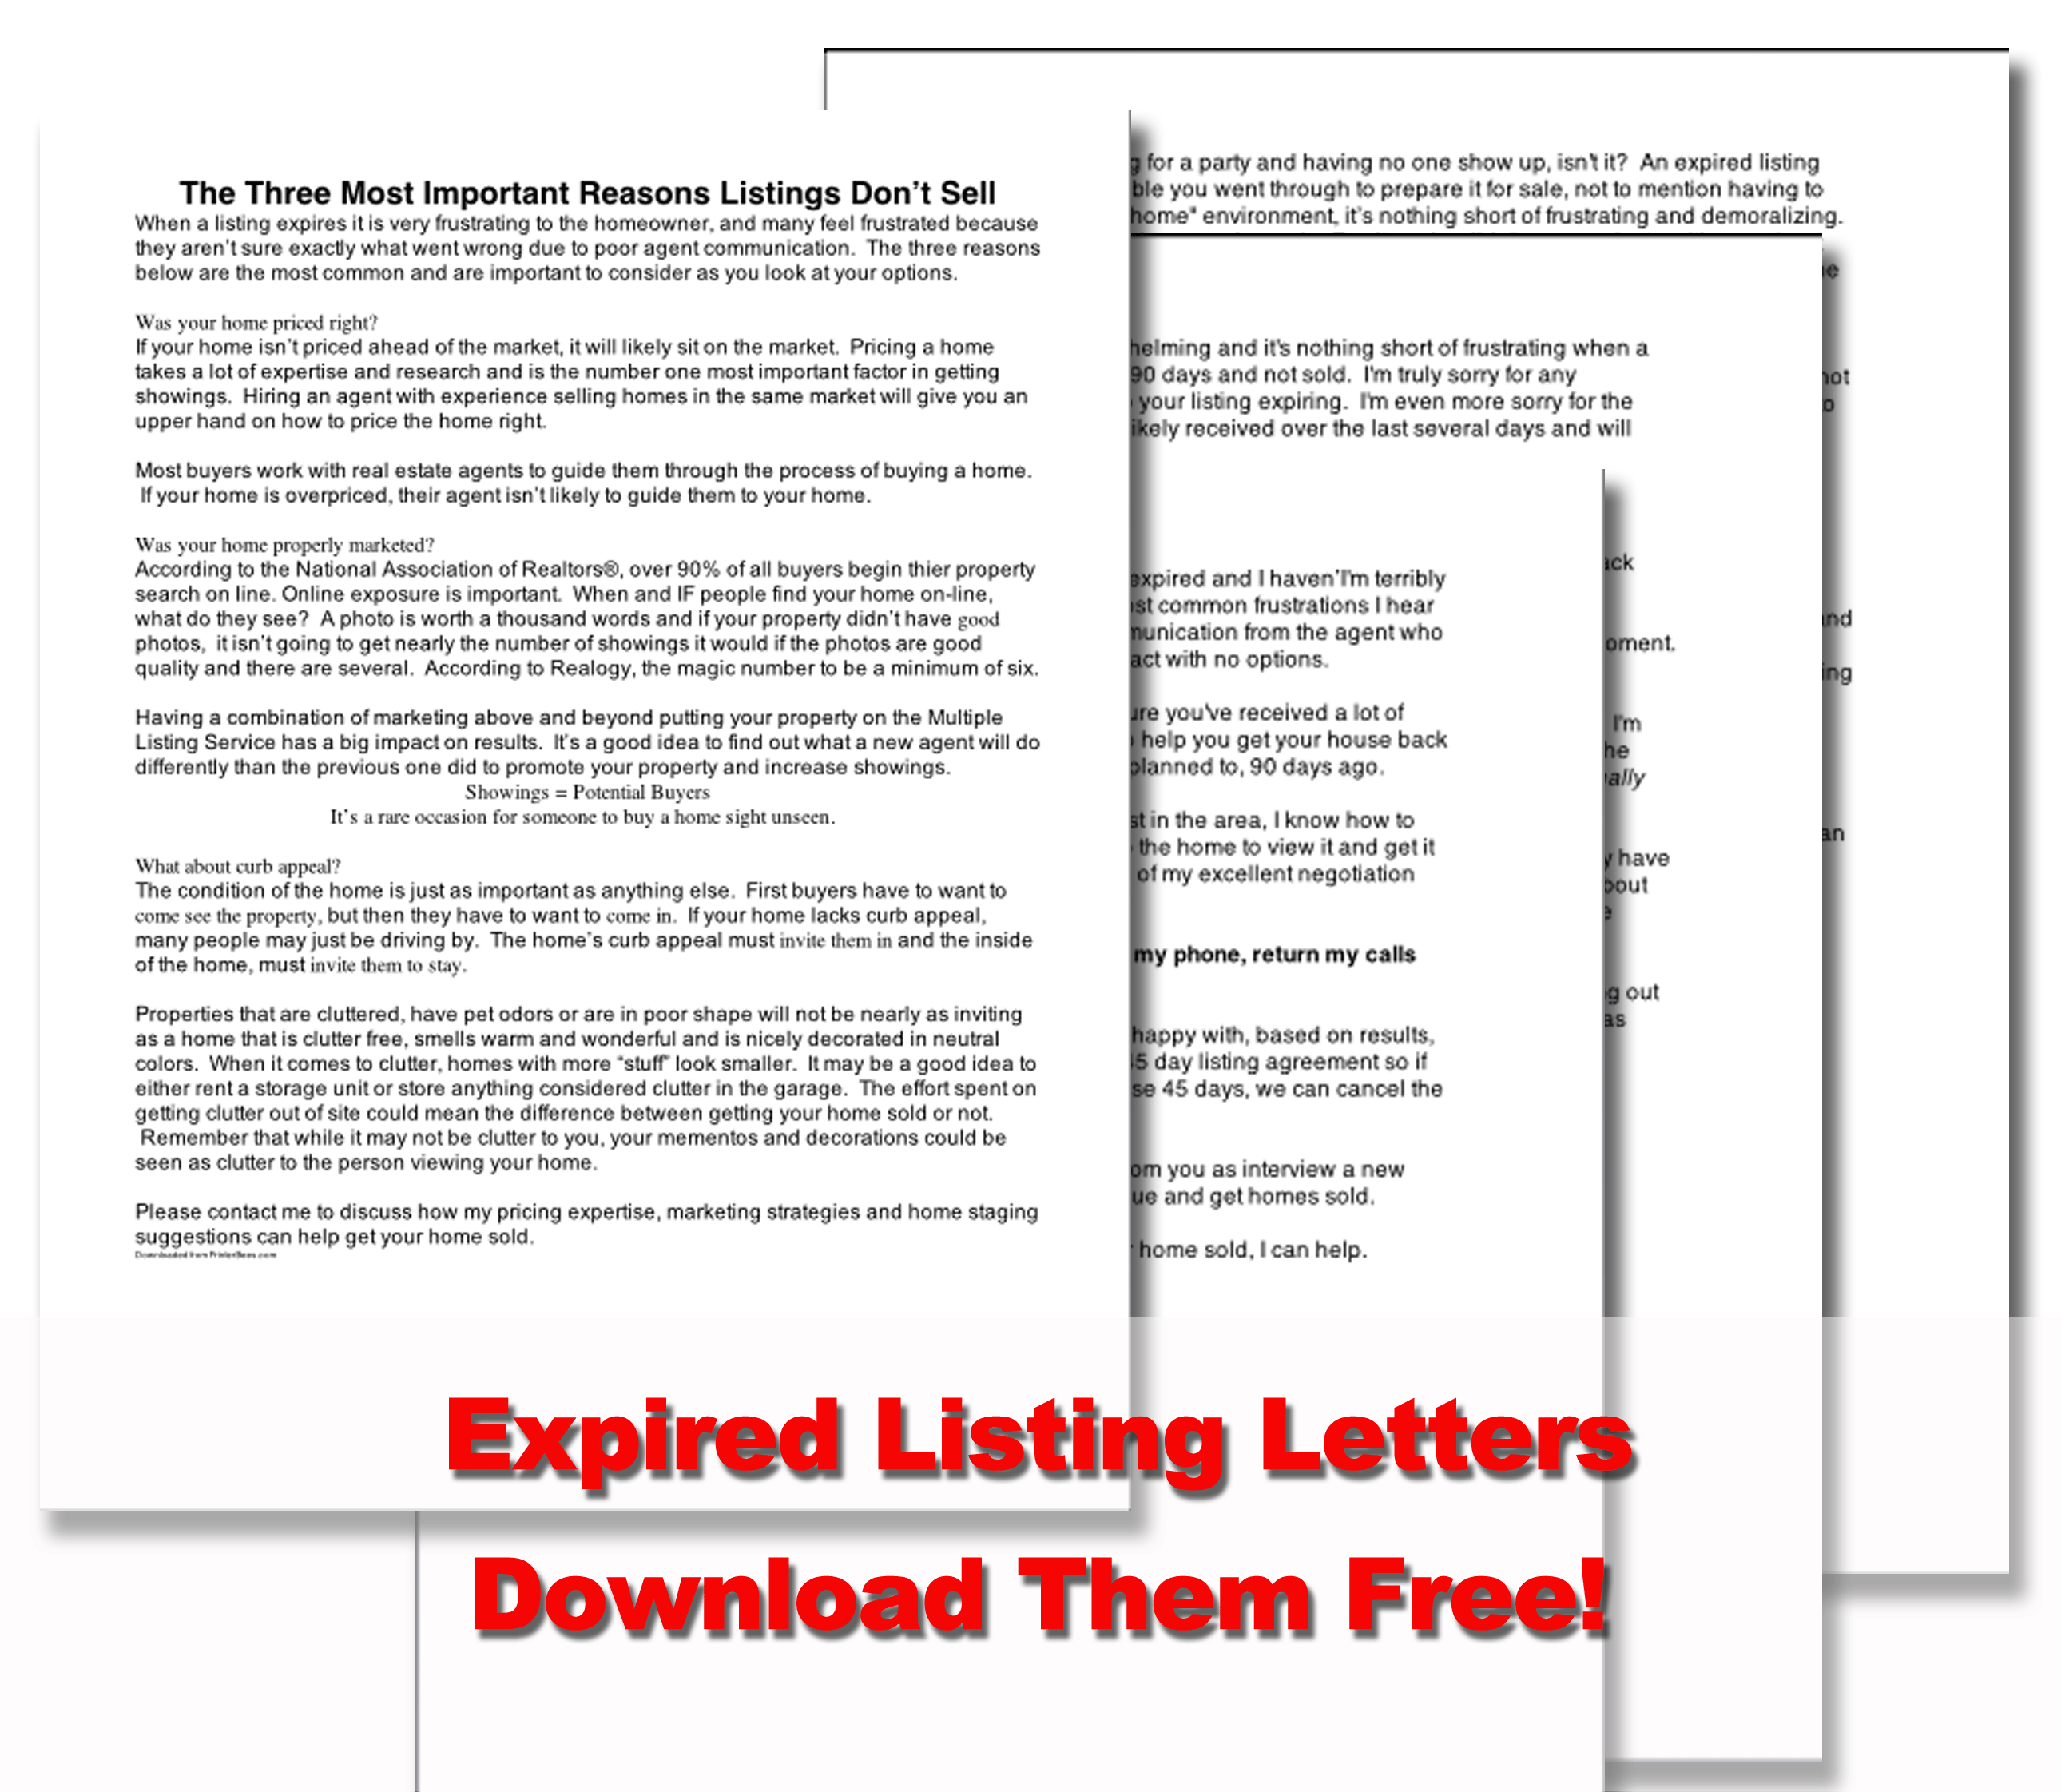 expired listing letters download free marketing real estate magazine